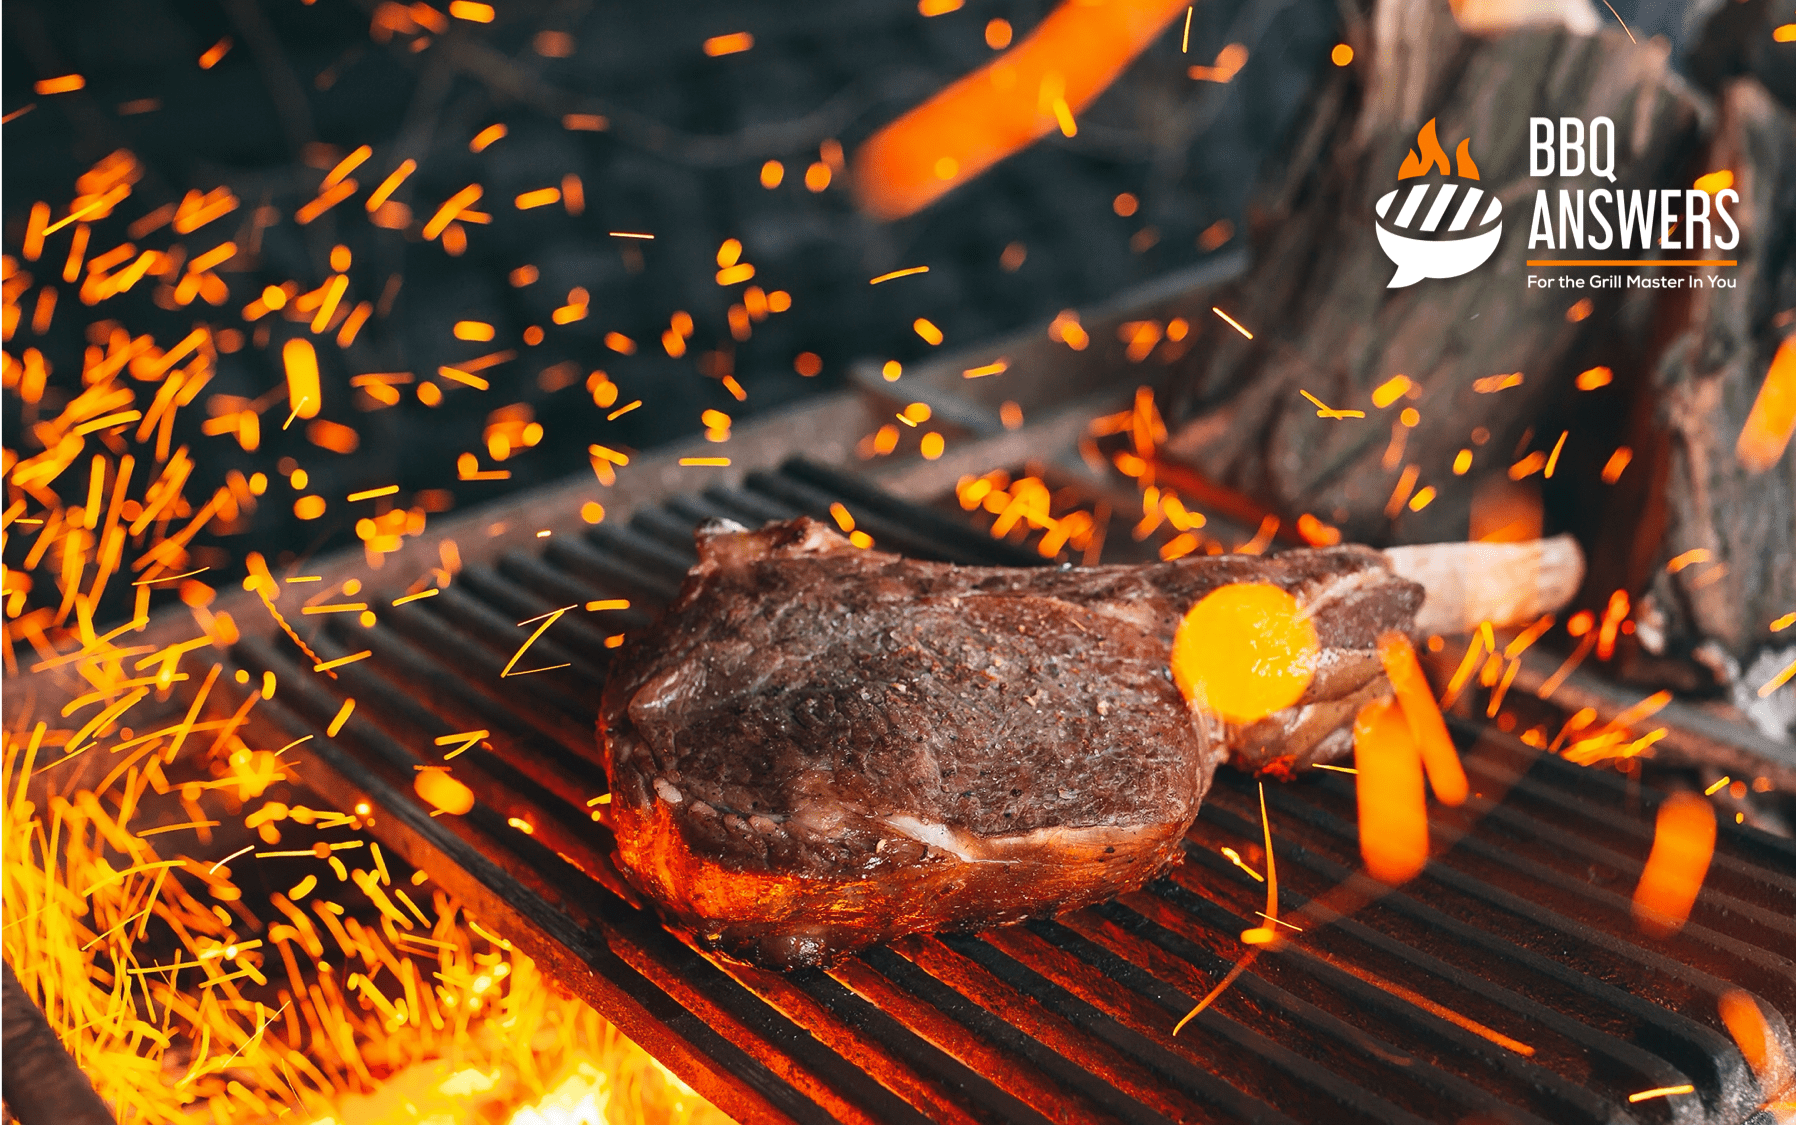 Grill Grates Best Material | BBQanswers